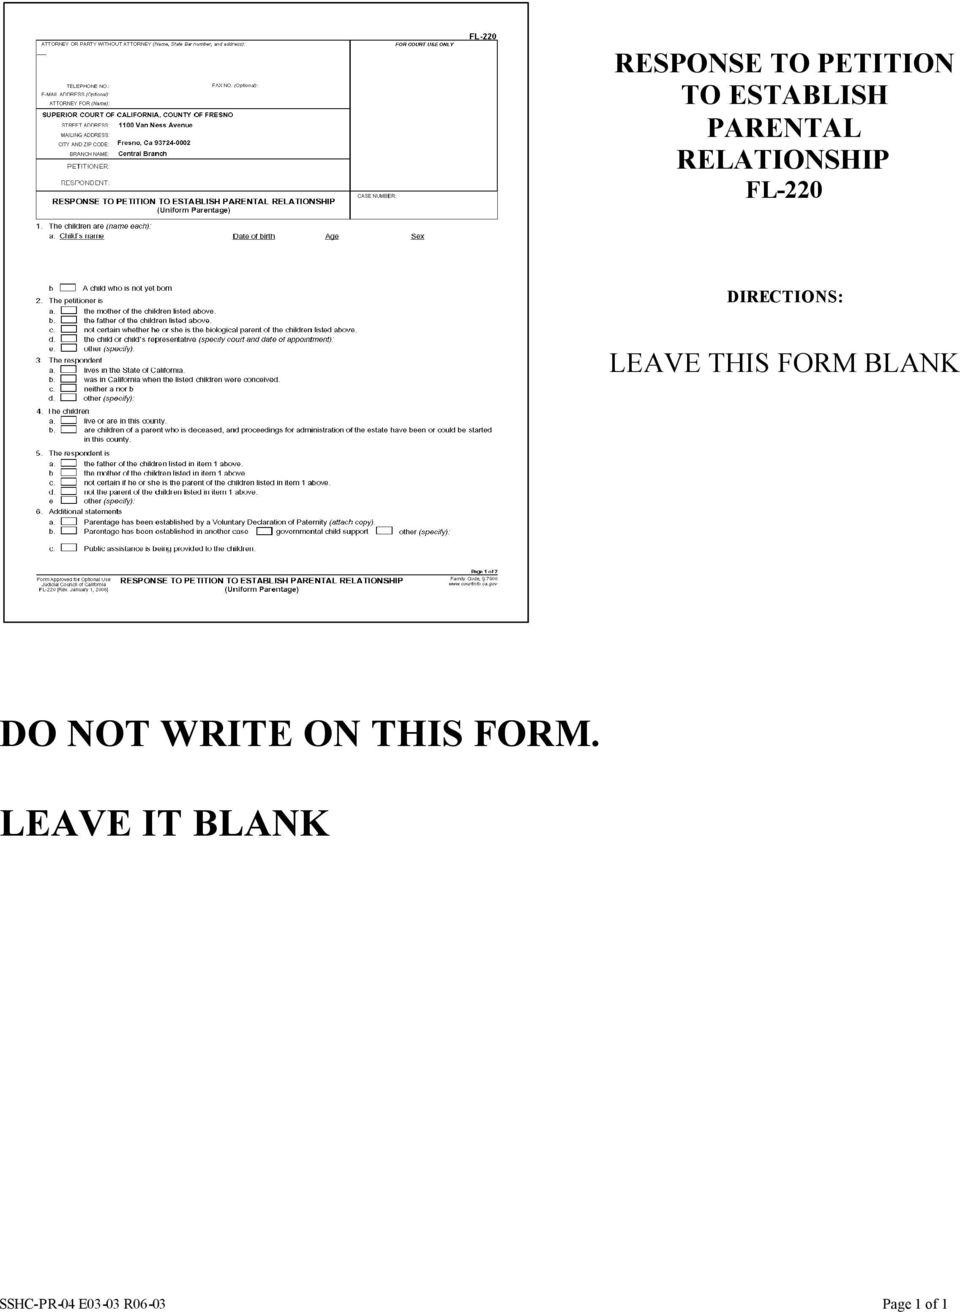 FORM BLANK DO NOT WRITE ON THIS FORM.